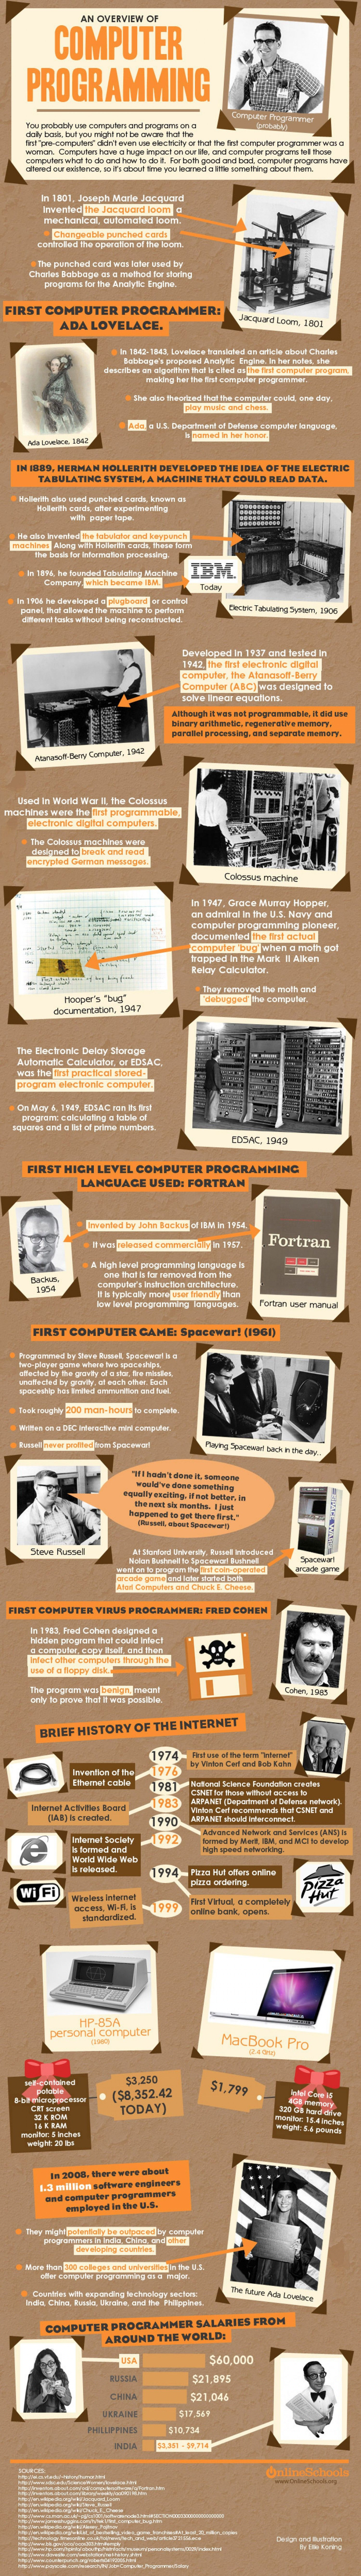 history and evolution of computer programming languages pdf